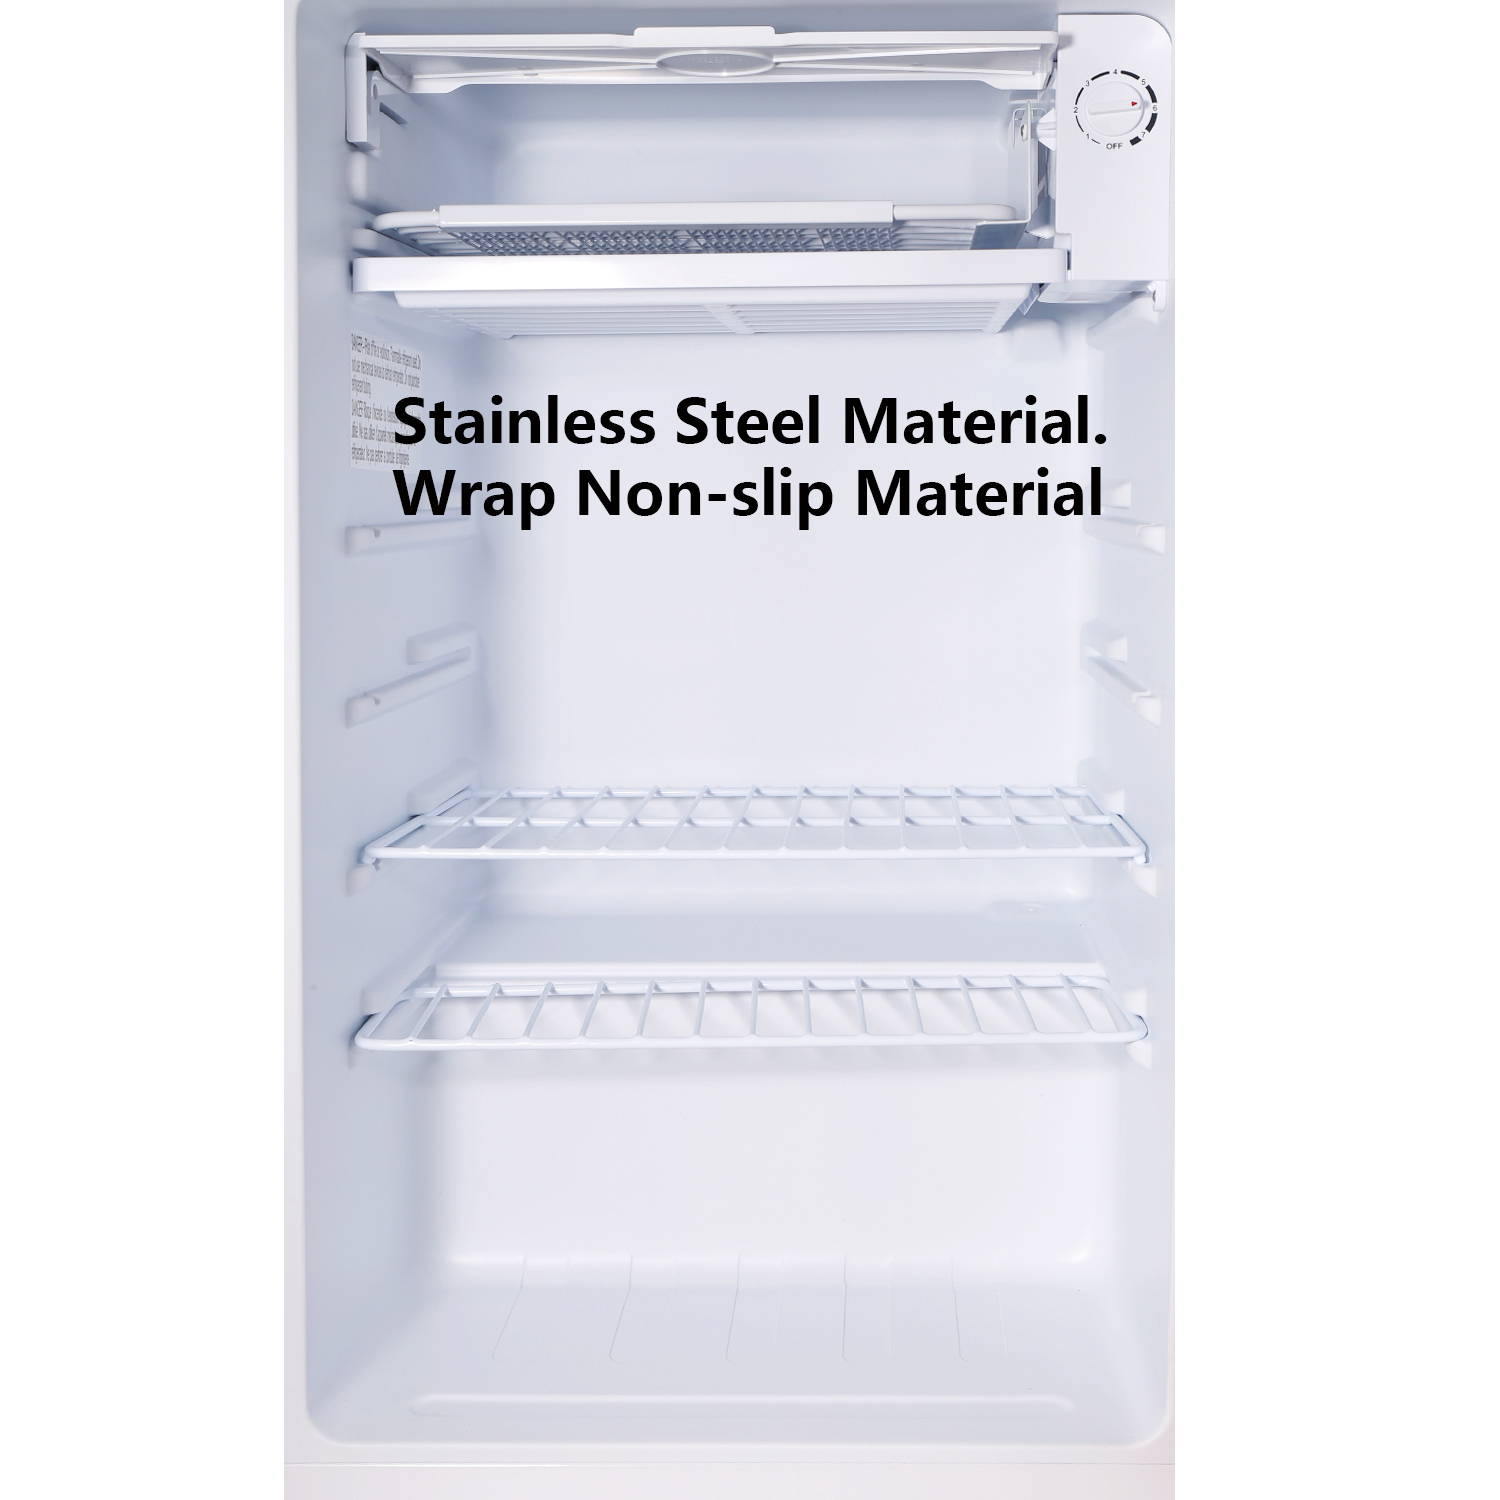 Aposen refrigerator with stainless steel and wrap non-slip material